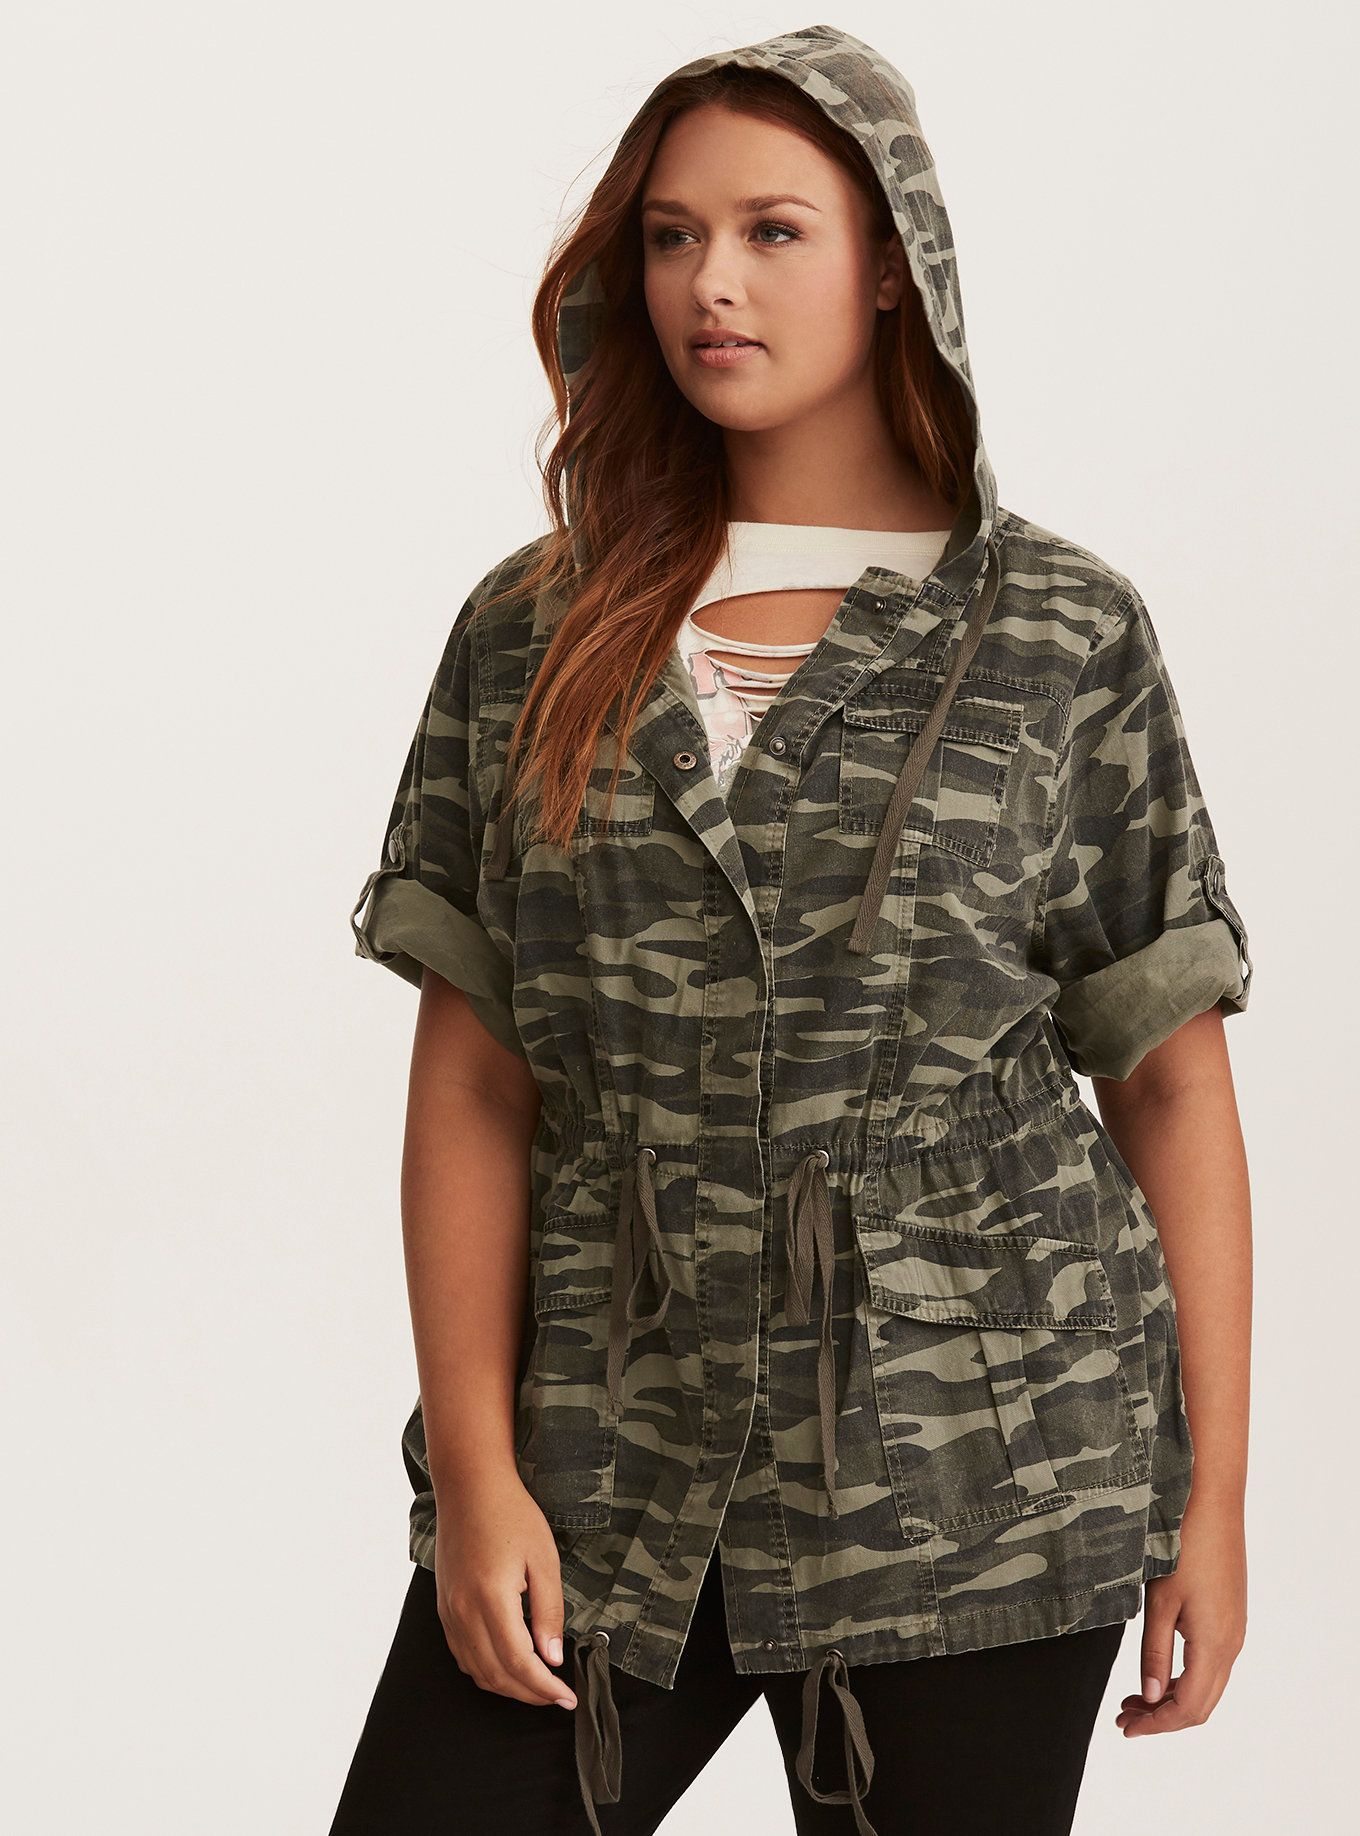 95a5b4cd68f987 Sport this military-inspired anorak anywhere and everywhere (that's an  order). Function meets fashion on the green camo print style, with a button  front, ...